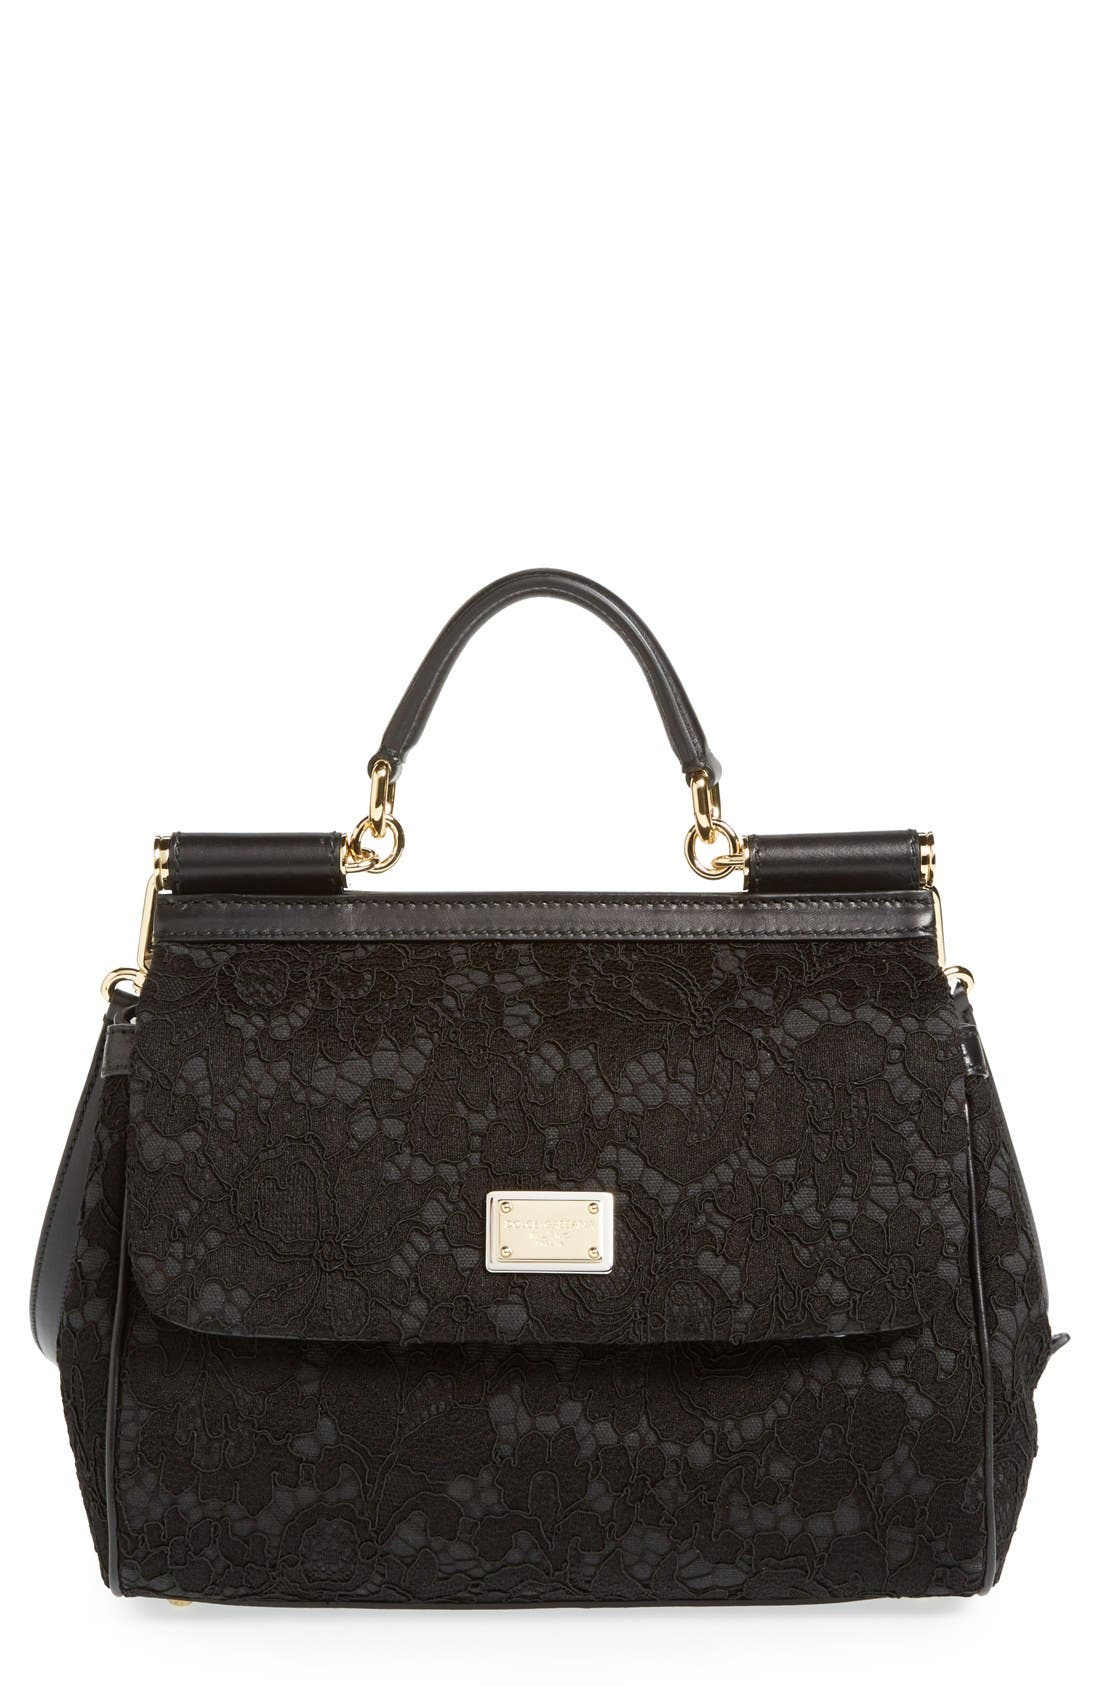 Main Image - Dolce&Gabbana 'Small Miss Sicily' Top Handle Satchel